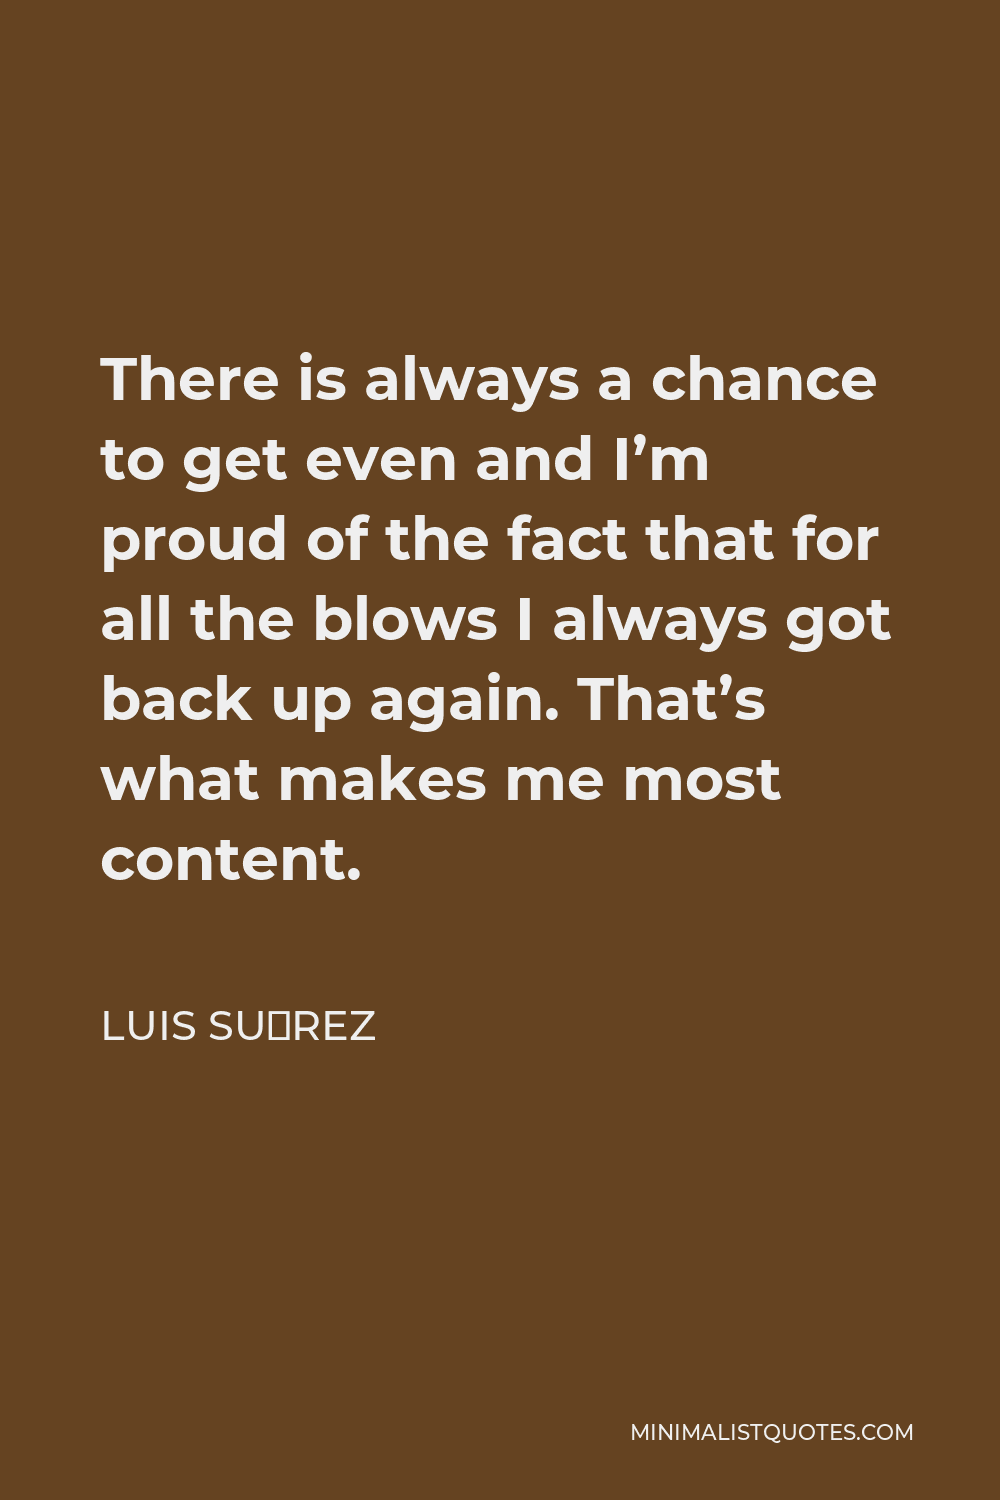 Luis Suárez Quote - There is always a chance to get even and I'm proud of the fact that for all the blows I always got back up again. That's what makes me most content.